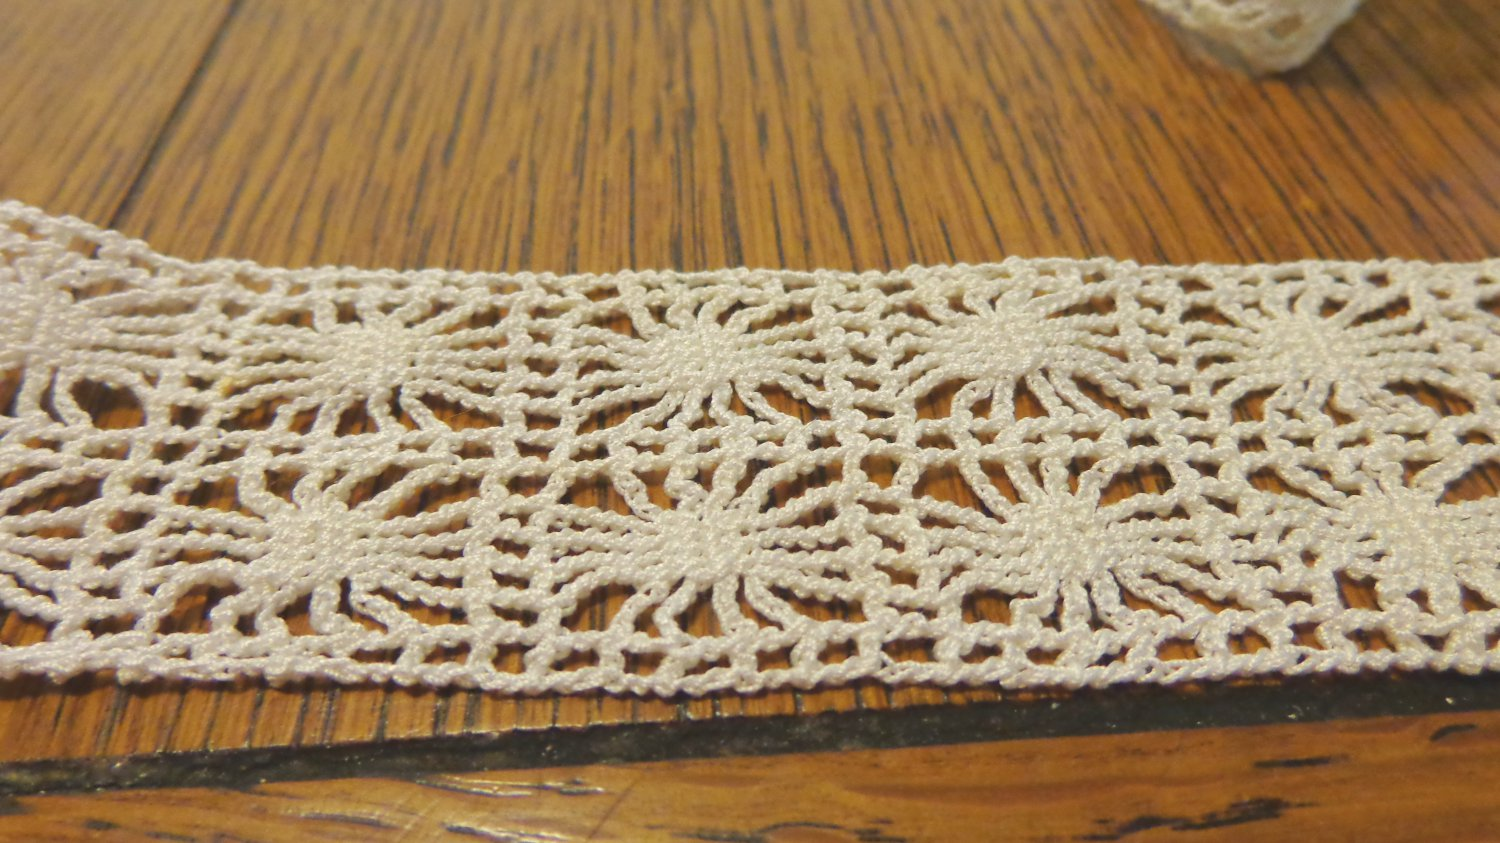 Hand crocheted lace trim white 48 inches long 1.4 inch wide hc3419